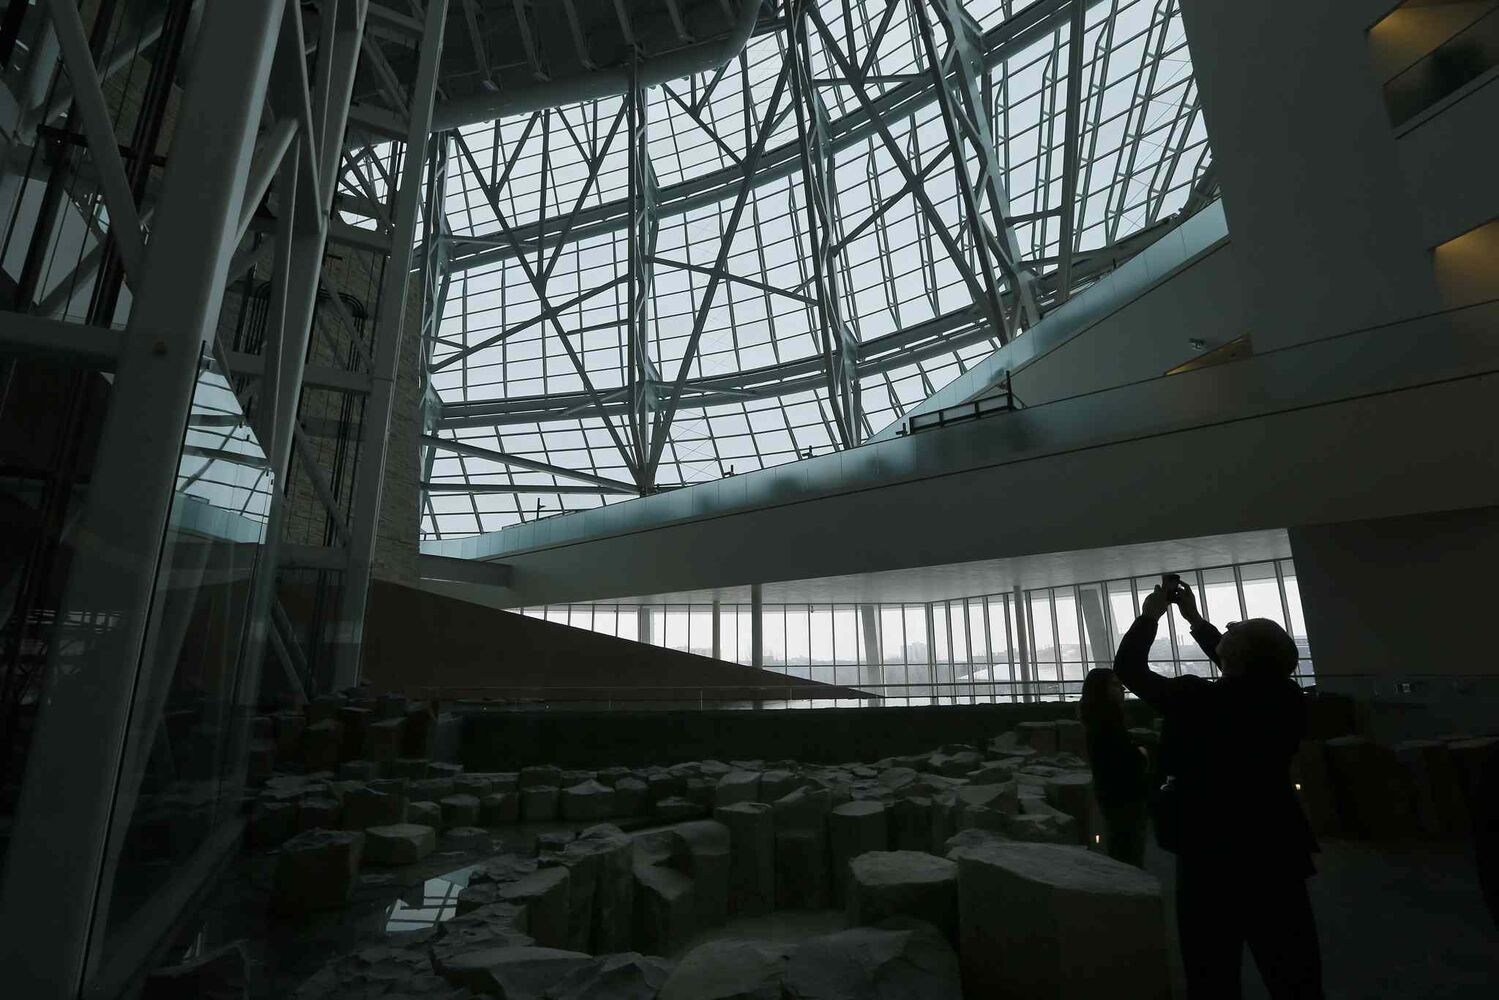 Light from the glass-walled outer structure brightens the public experience on the second level Garden of Contemplation. (KEN GIGLIOTTI / WINNIPEG FREE PRESS)